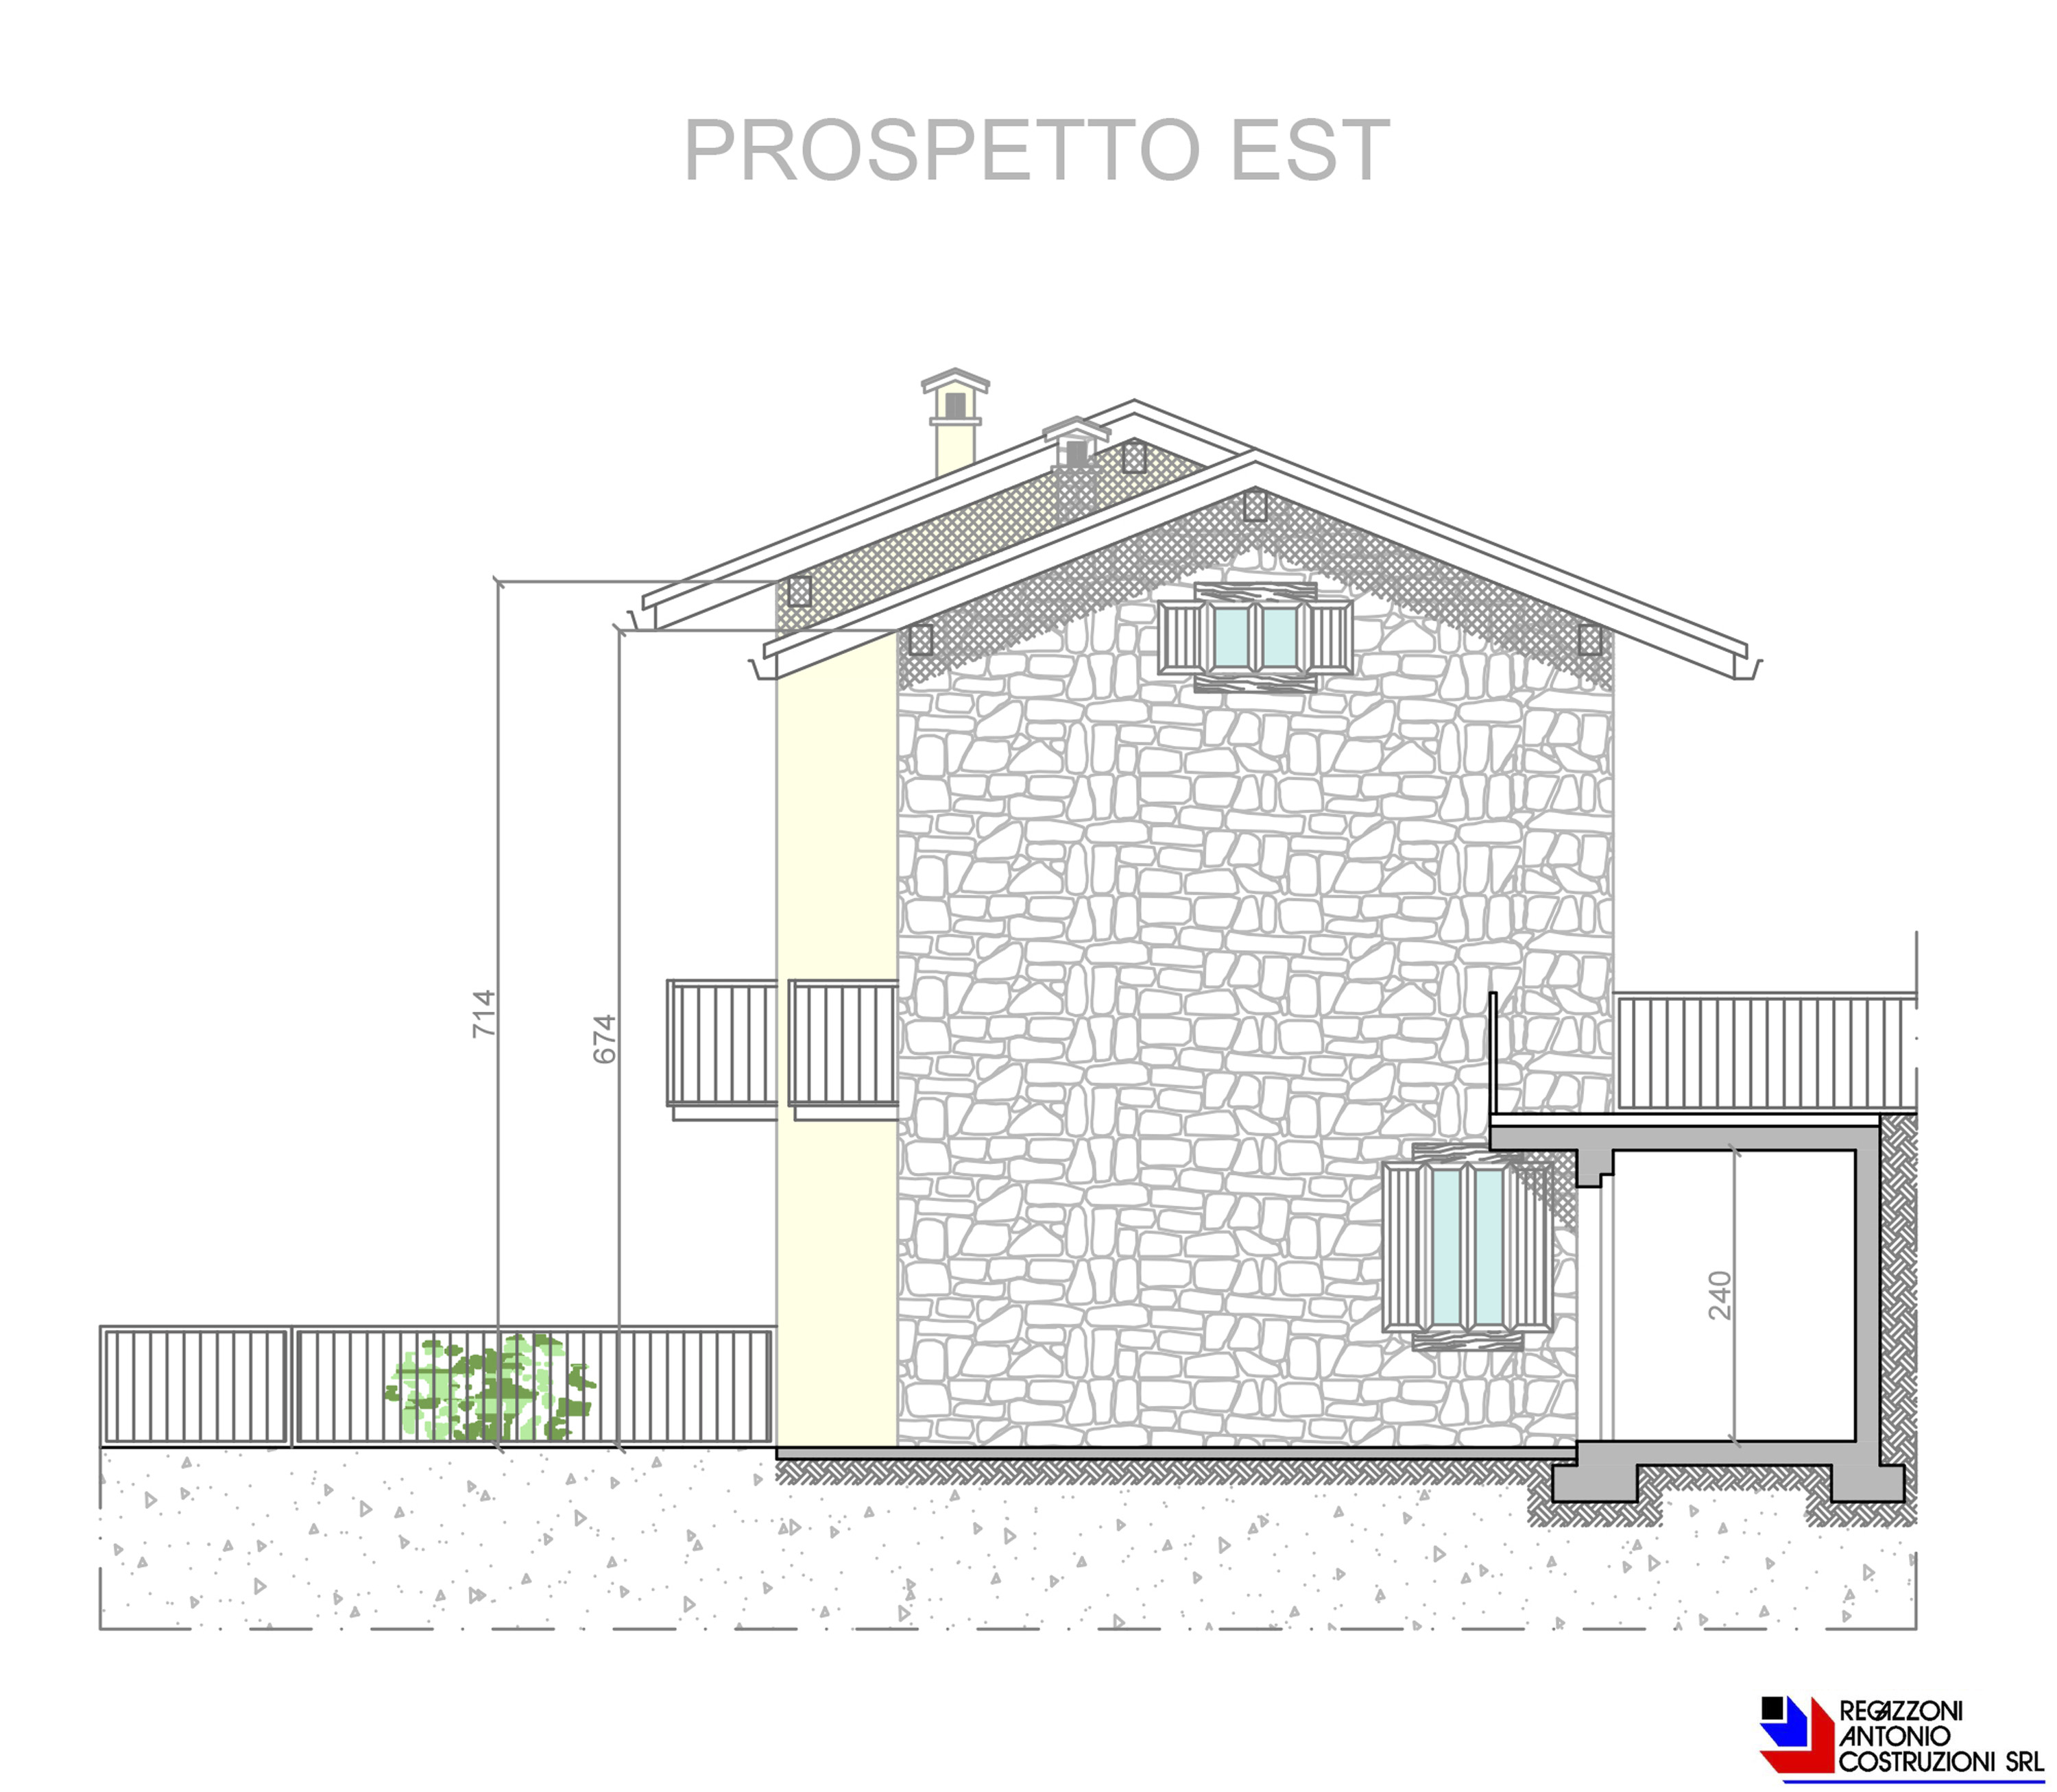 Prospett est Lotto C - scala 1a100